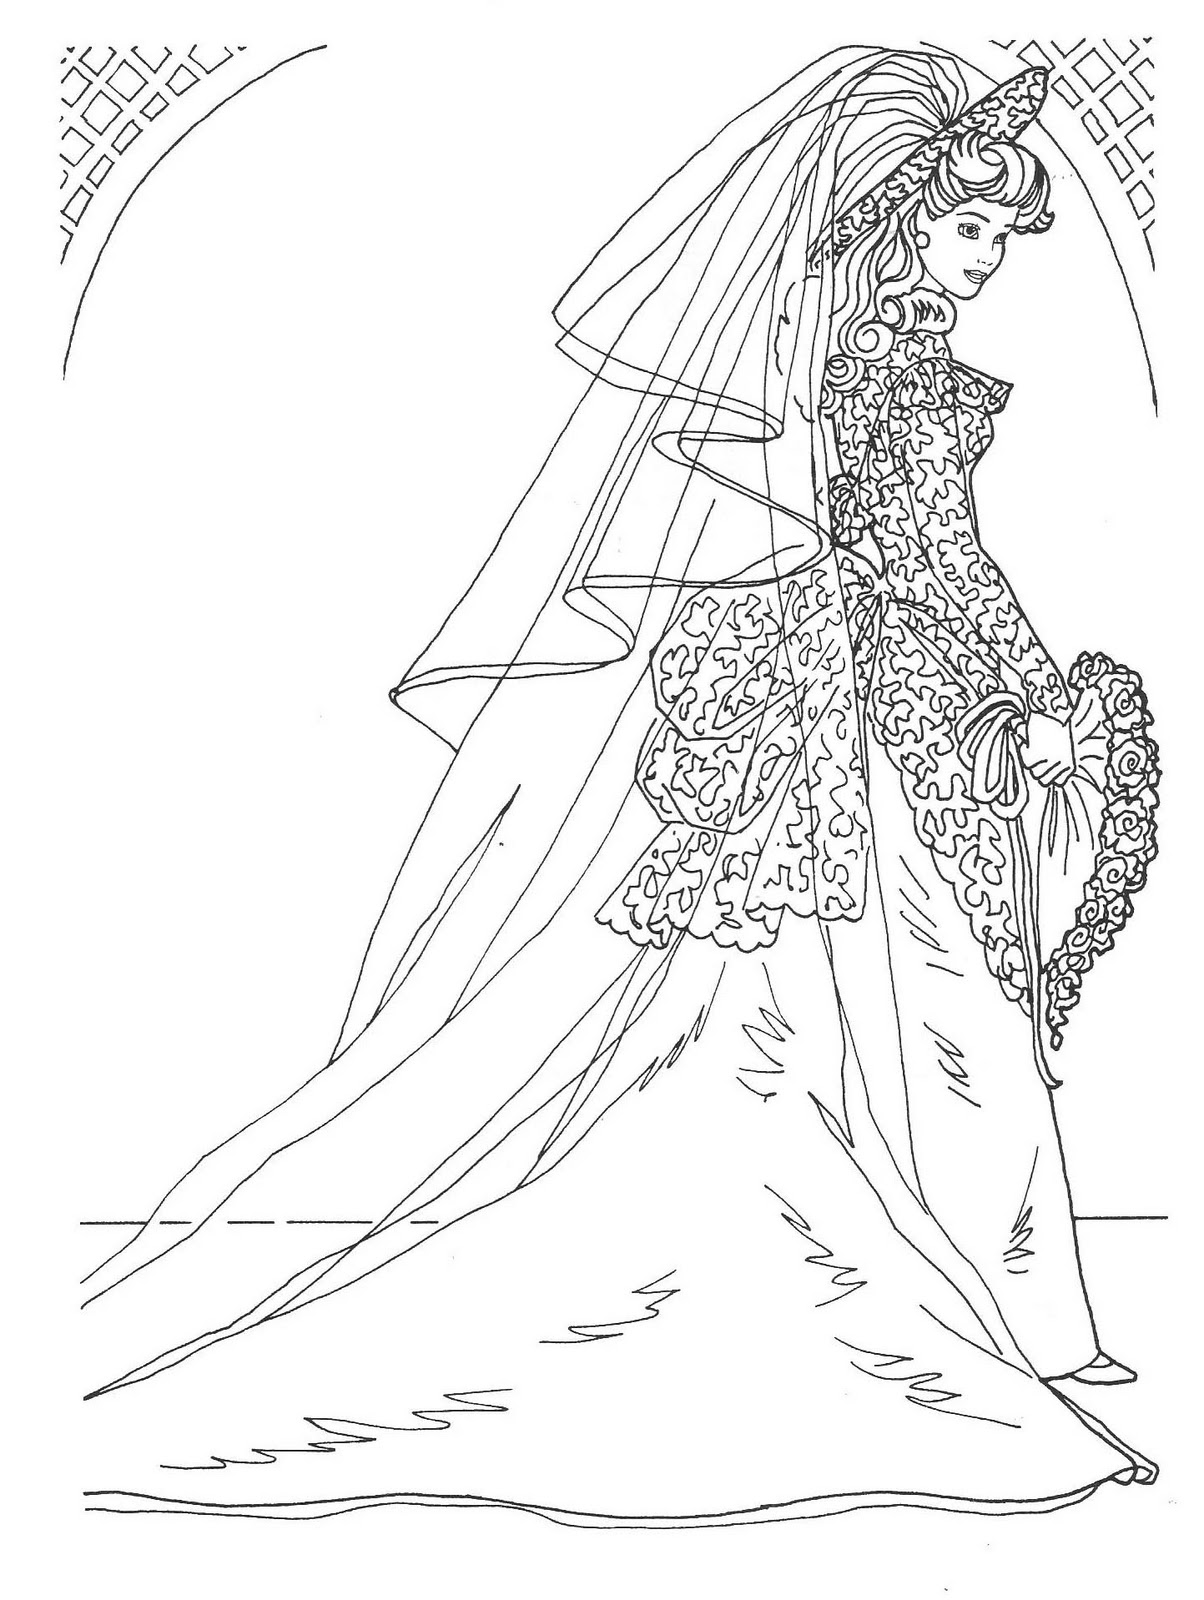 BARBIE COLORING PAGES: WEDDING DAY BARBIE IN BRIDAL GOWN COLORING ...